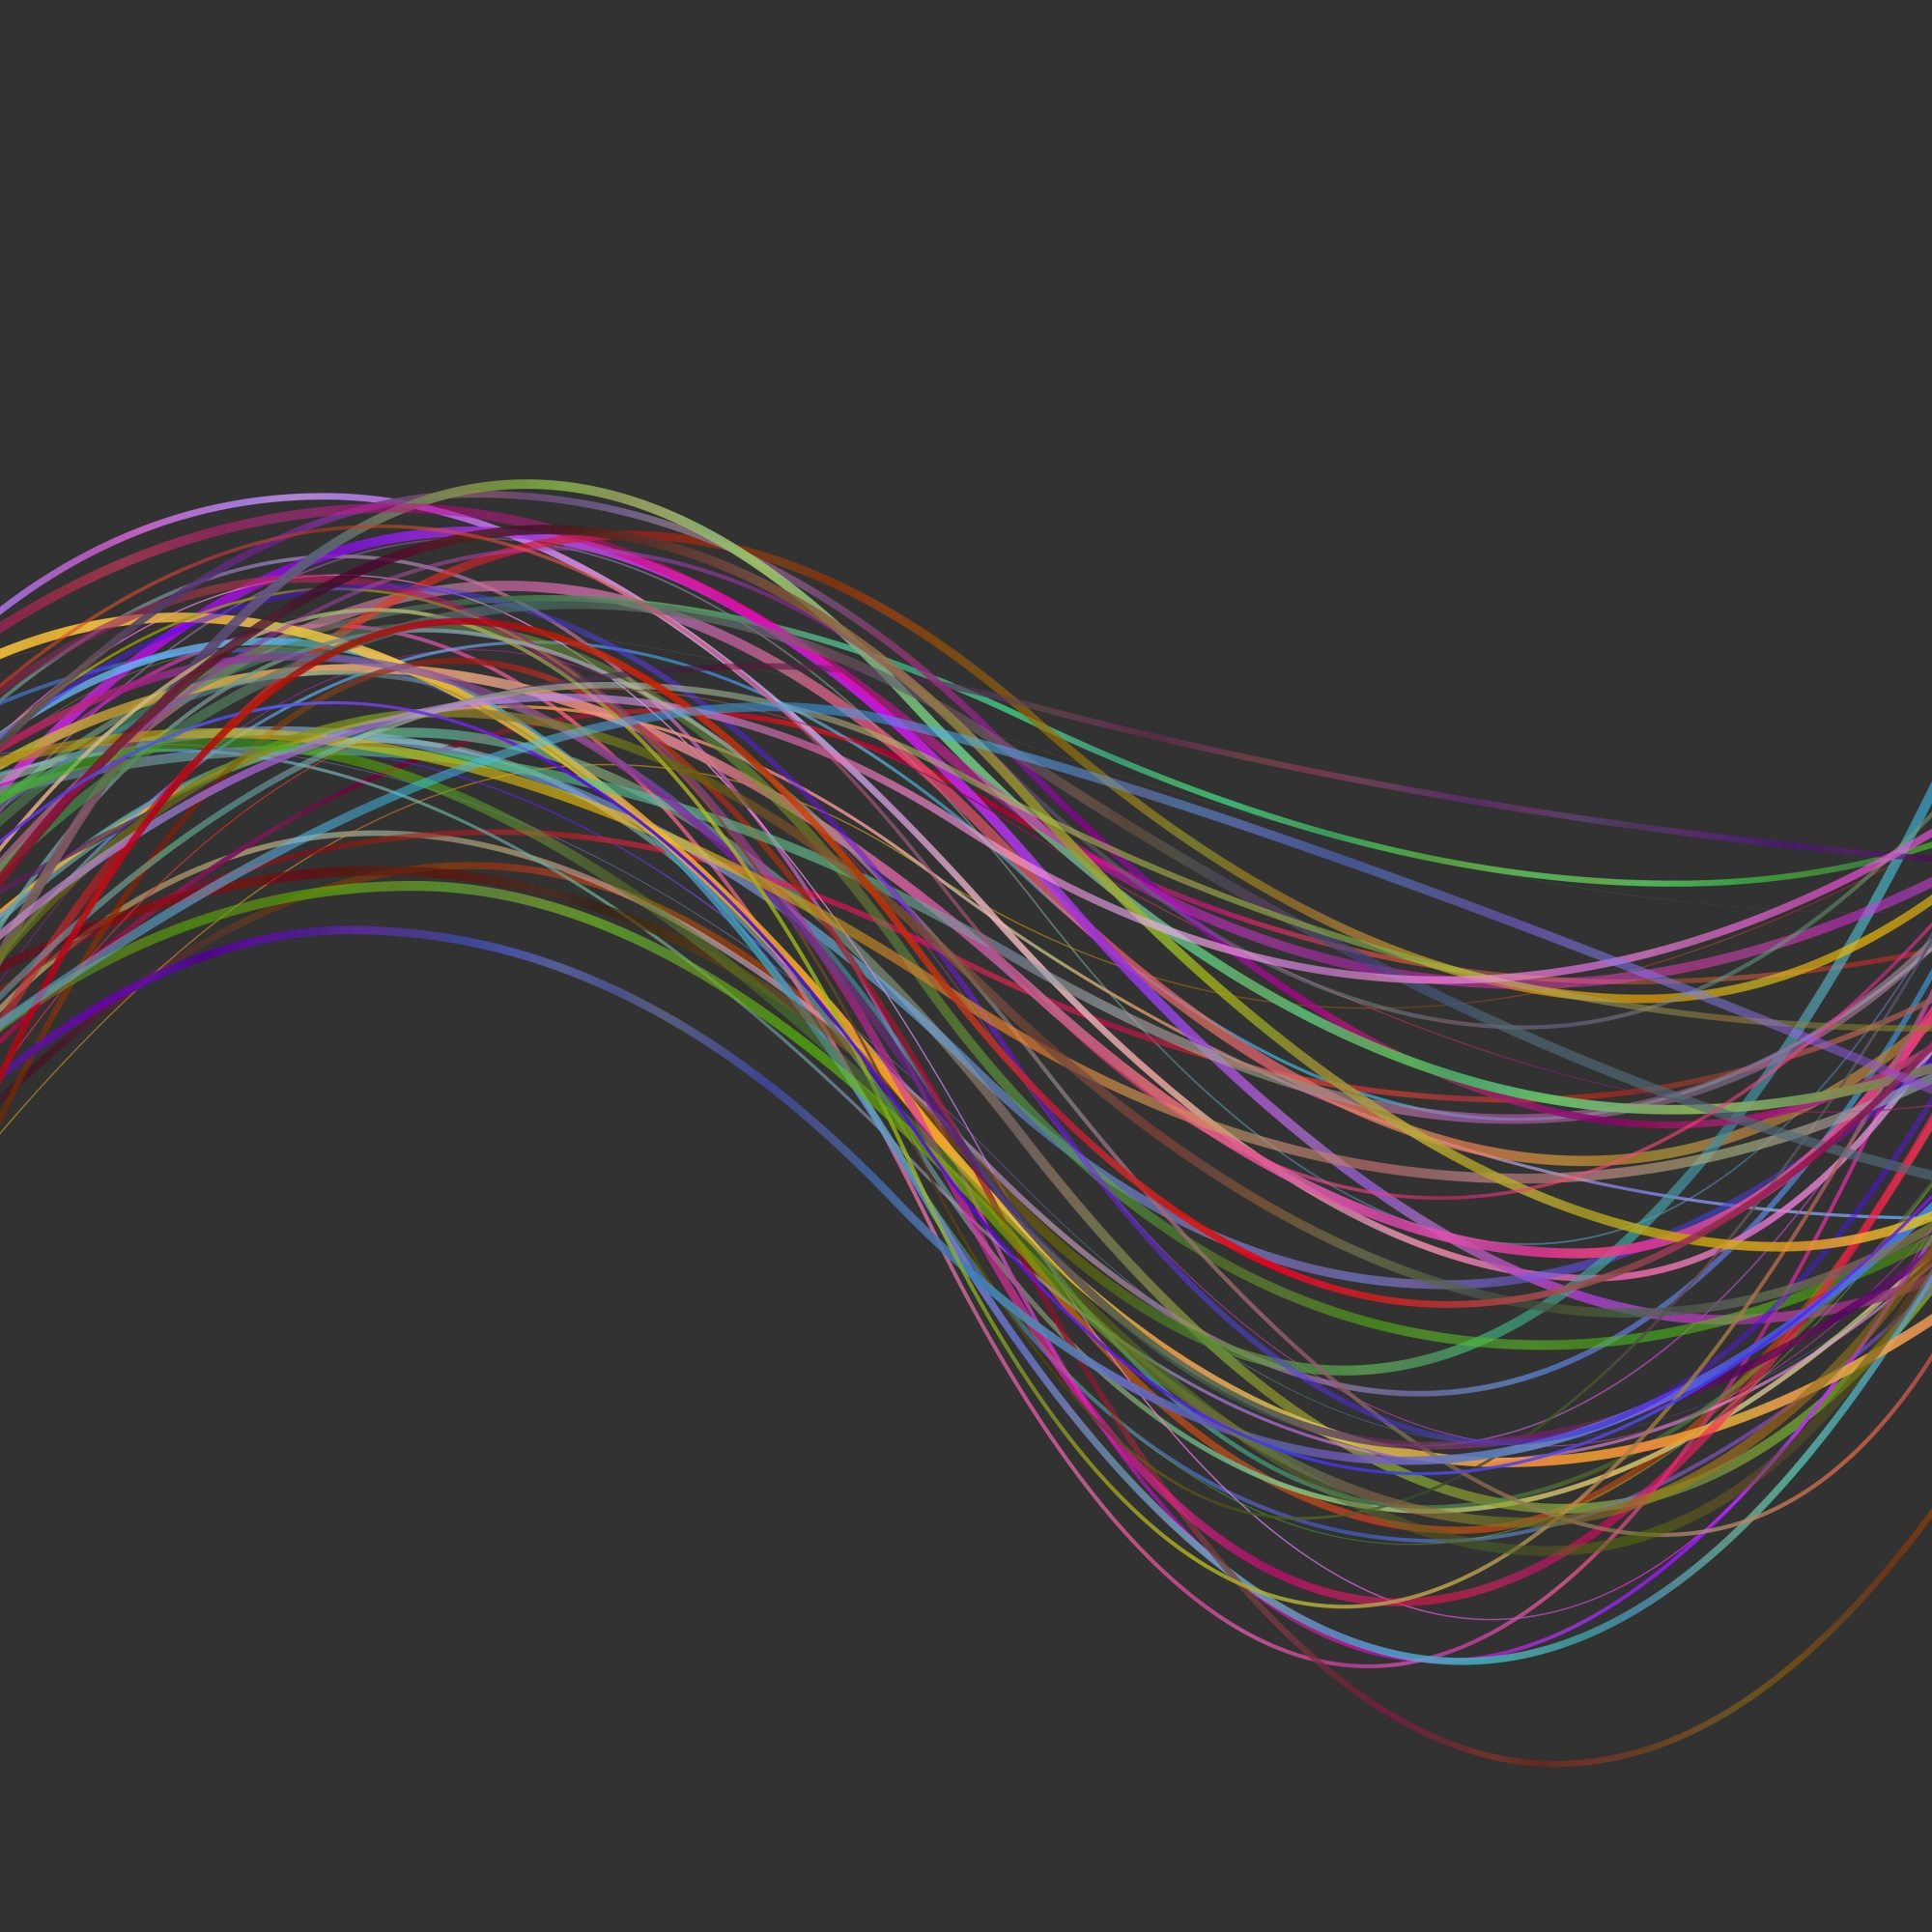 Abstract modern wavy stripe background - vector graphic design from colorful curved wave lines